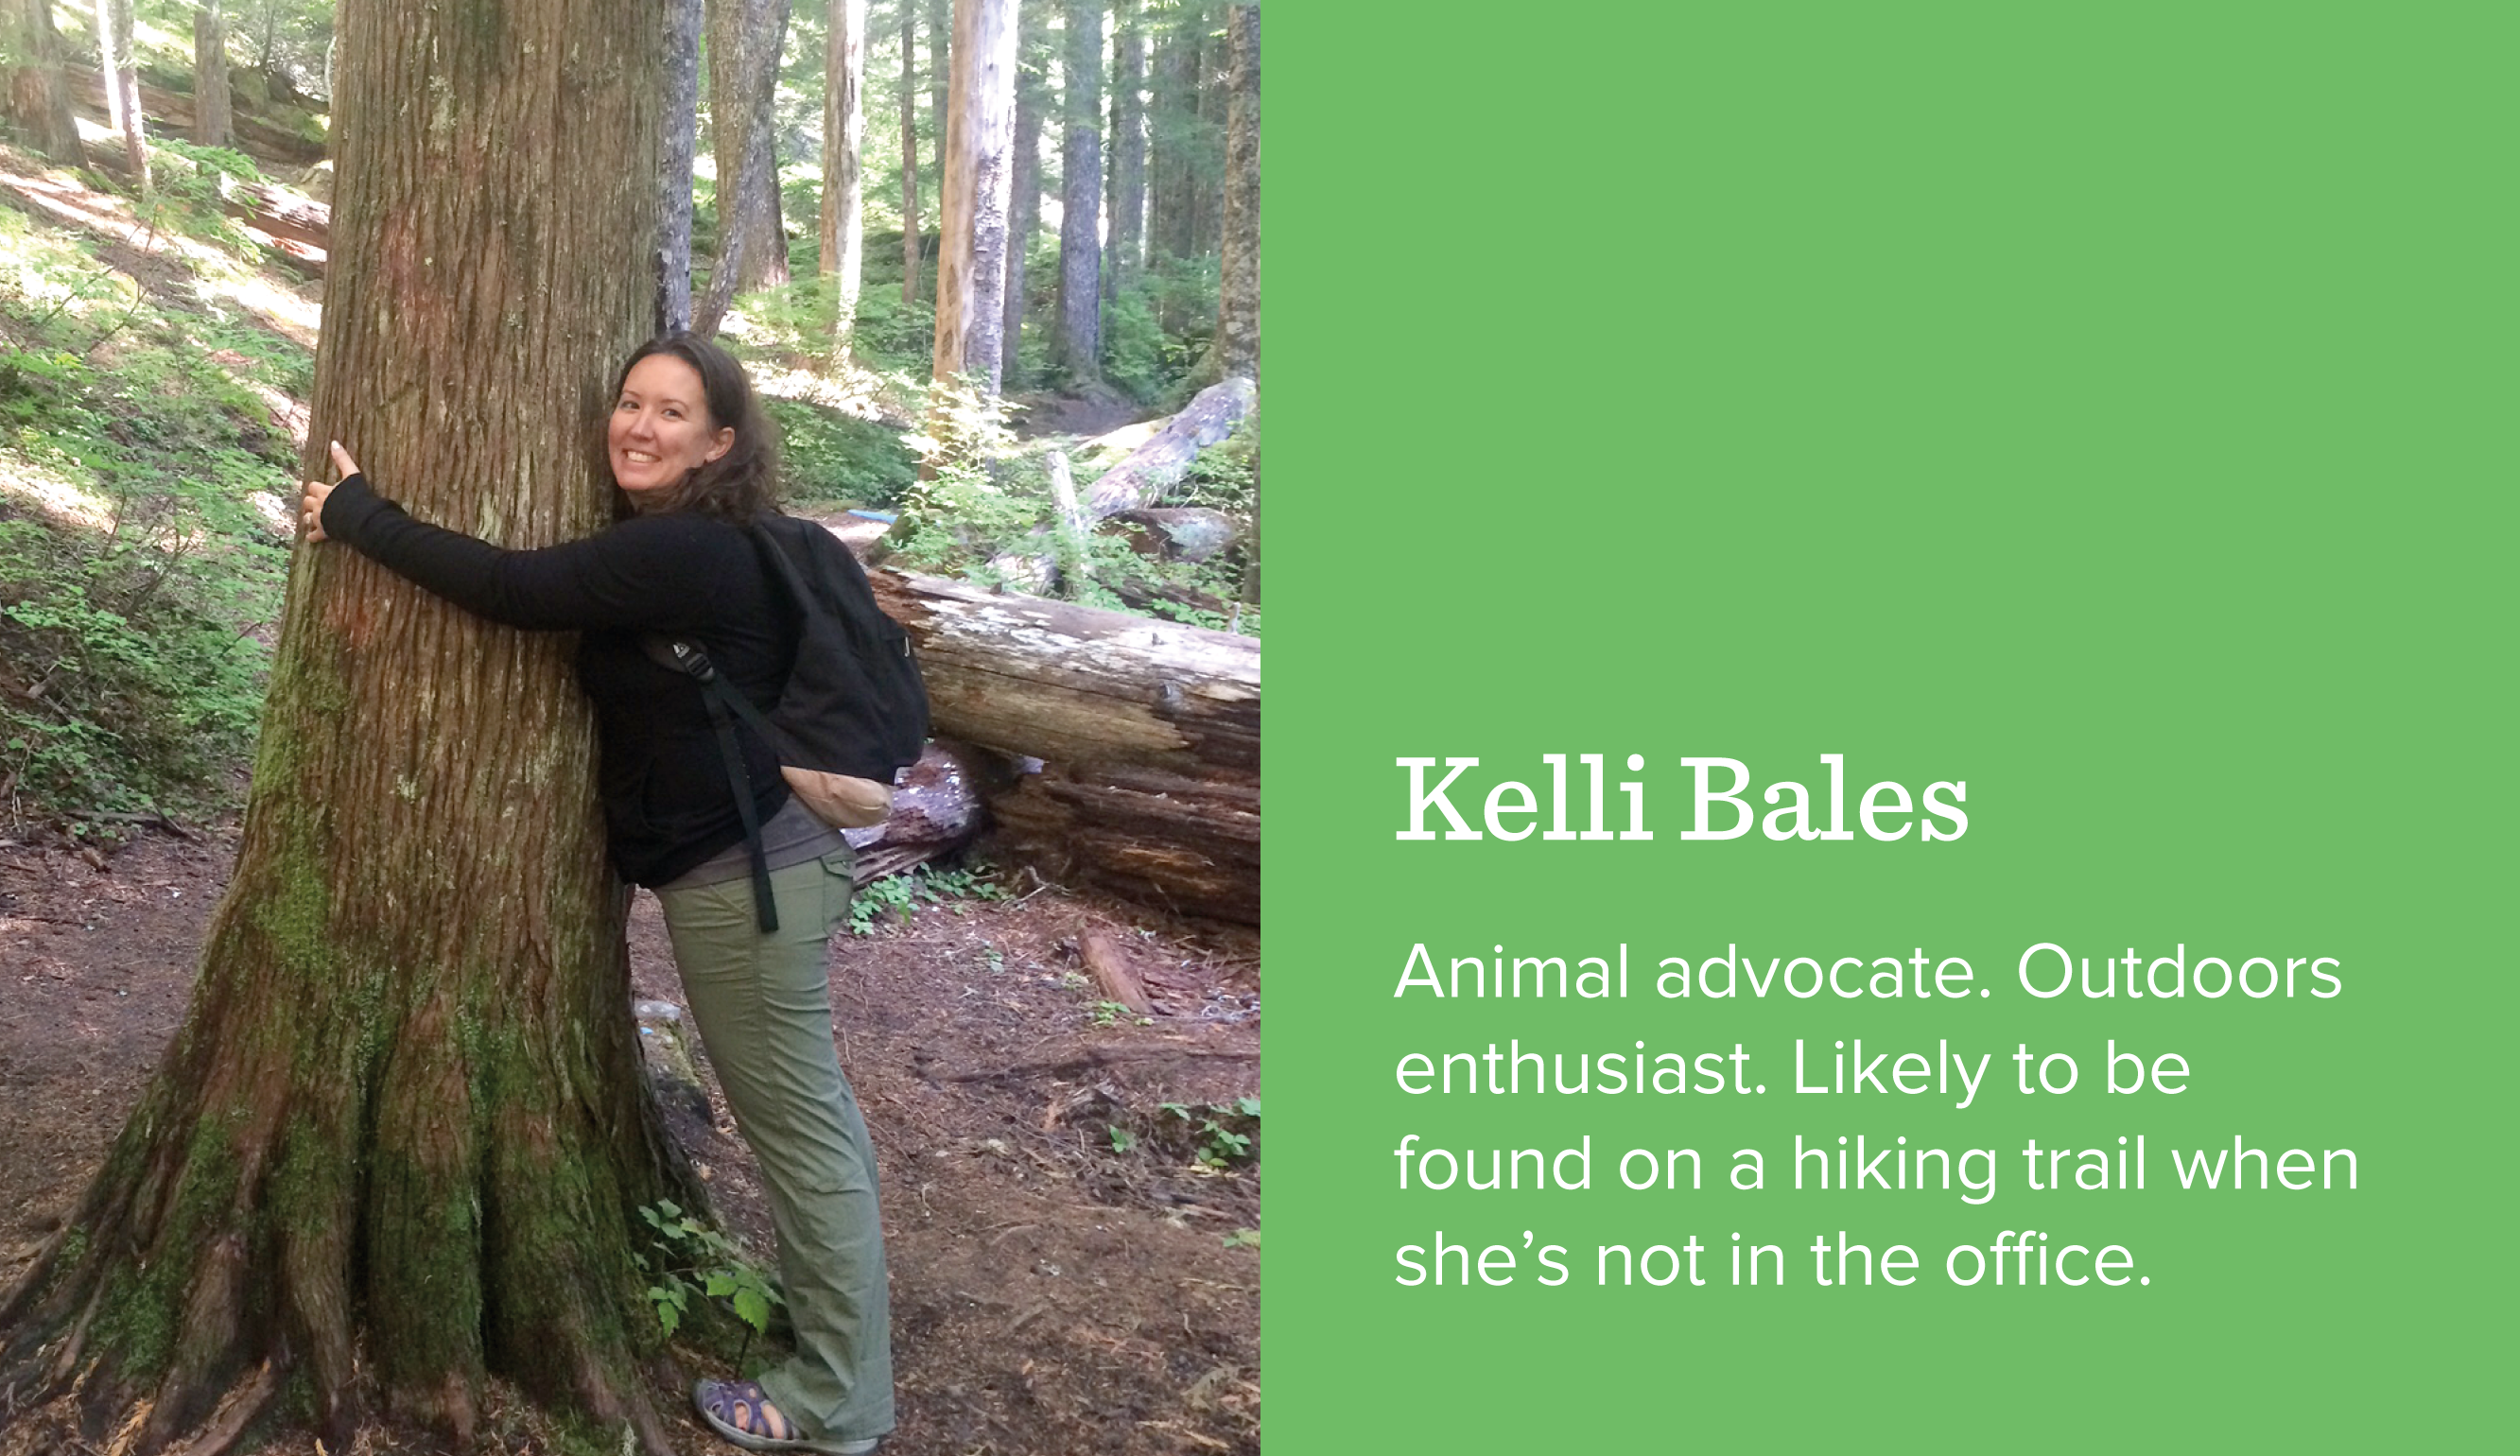 Kelli Bales. Animal advocate. Outdoors enthusiast. Likely to be found on a hiking trail when she's not in the office.